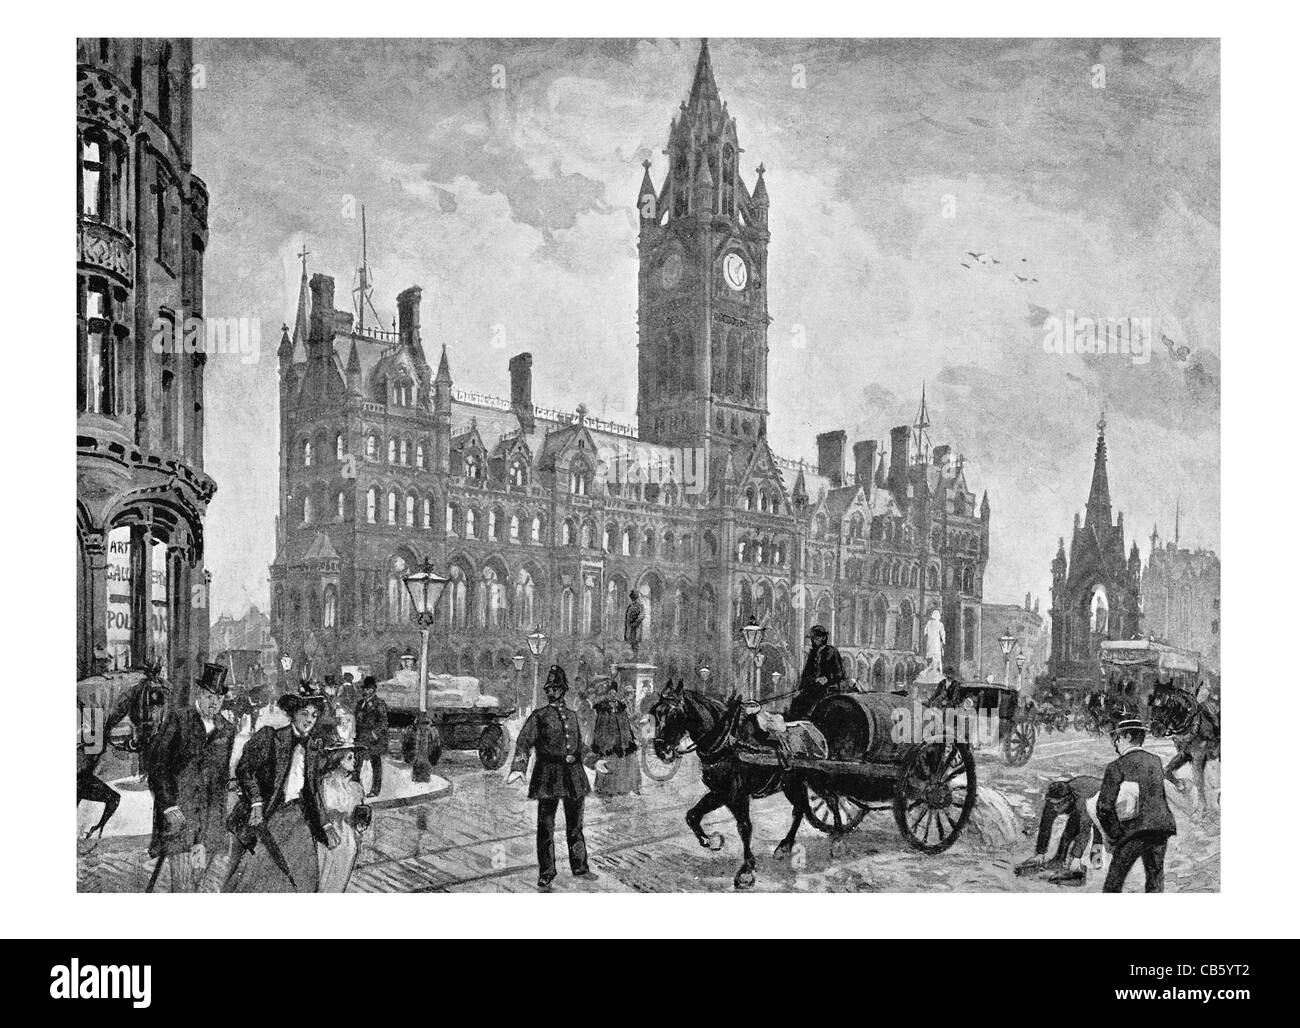 Manchester Town Hall Victorian Era Neo Gothic Architecture Municipal Building City Council Alfred Waterhouse